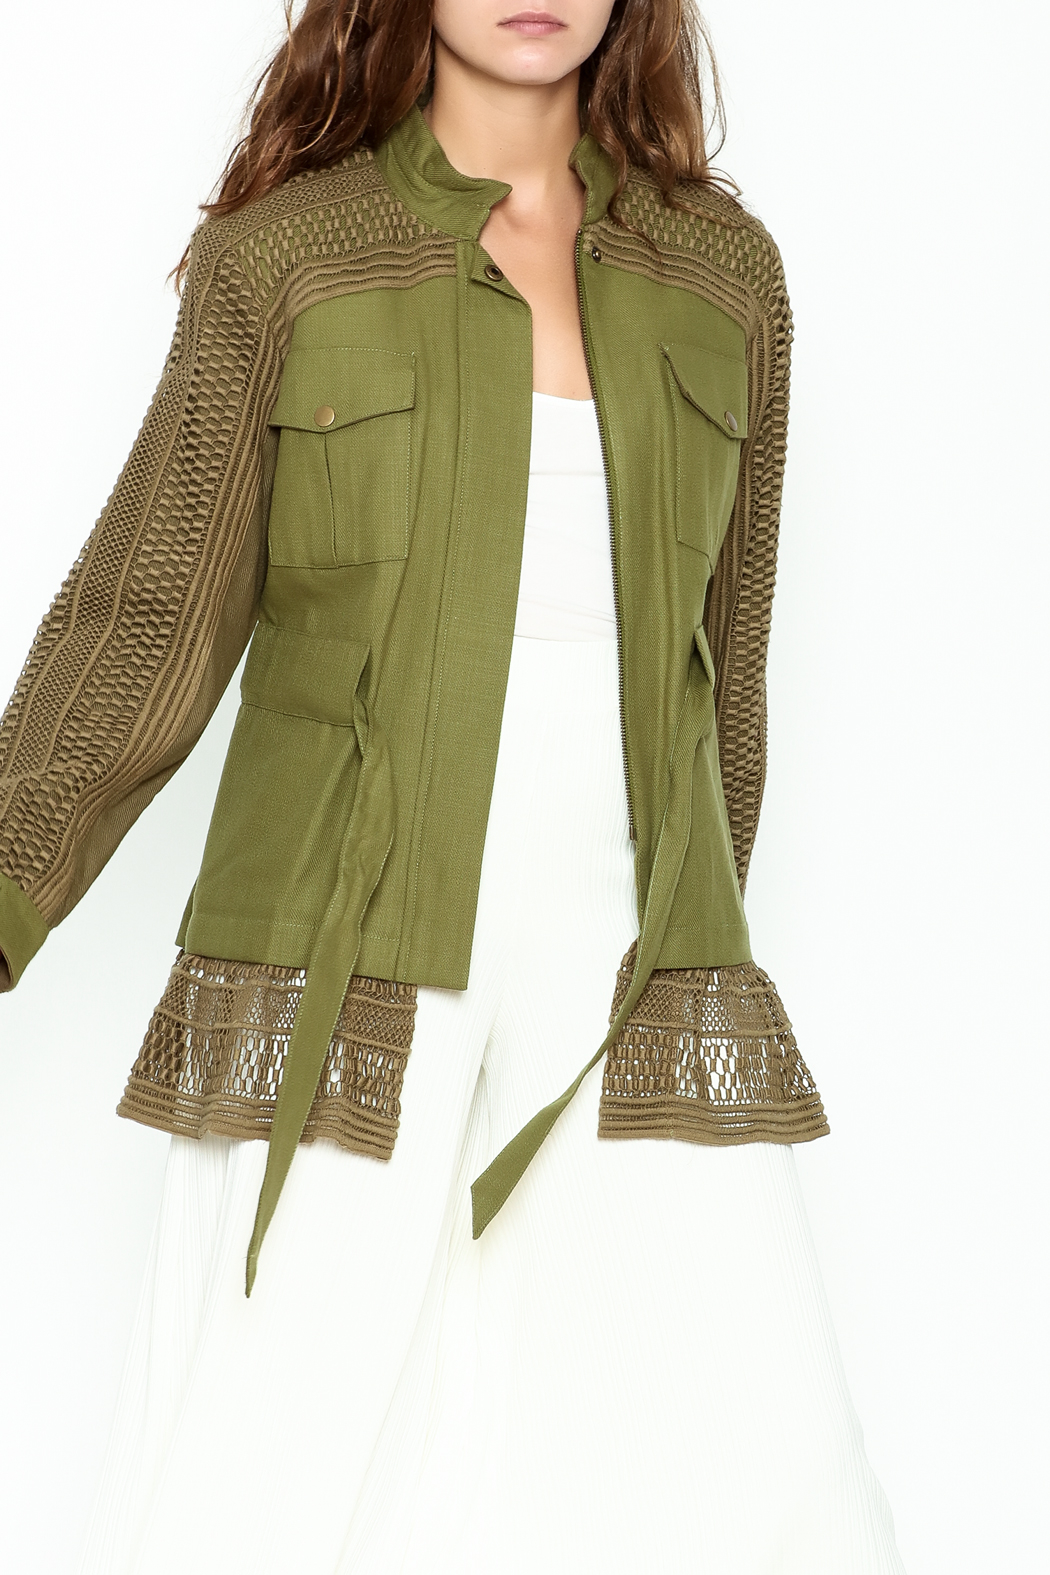 SEA Baja Lace Military Jacket - Main Image